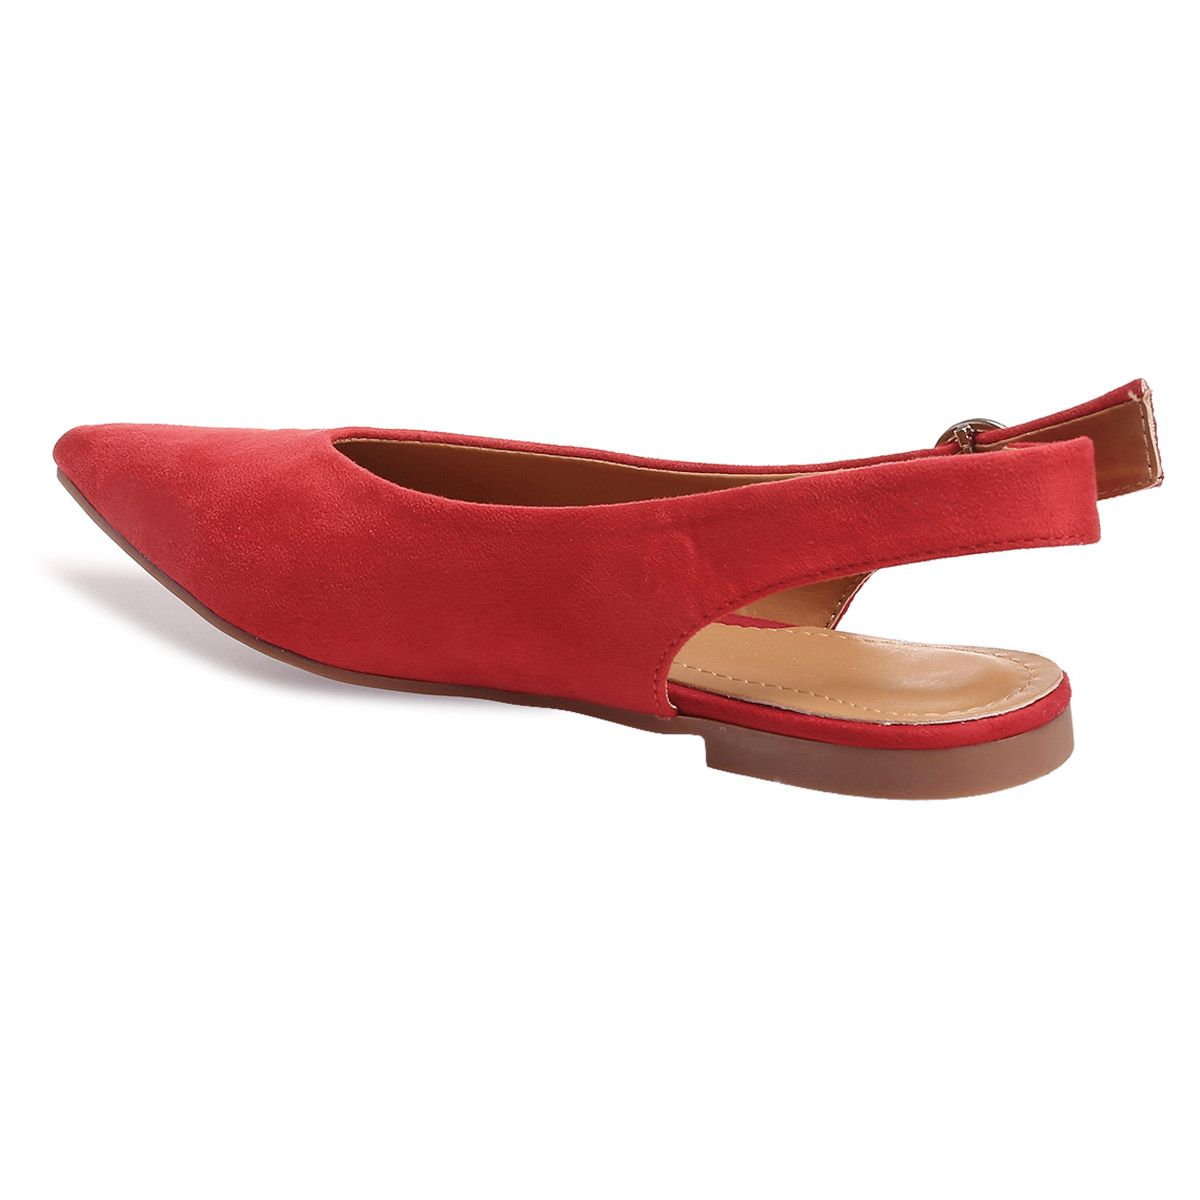 Ballerines rouges pointues à boucle